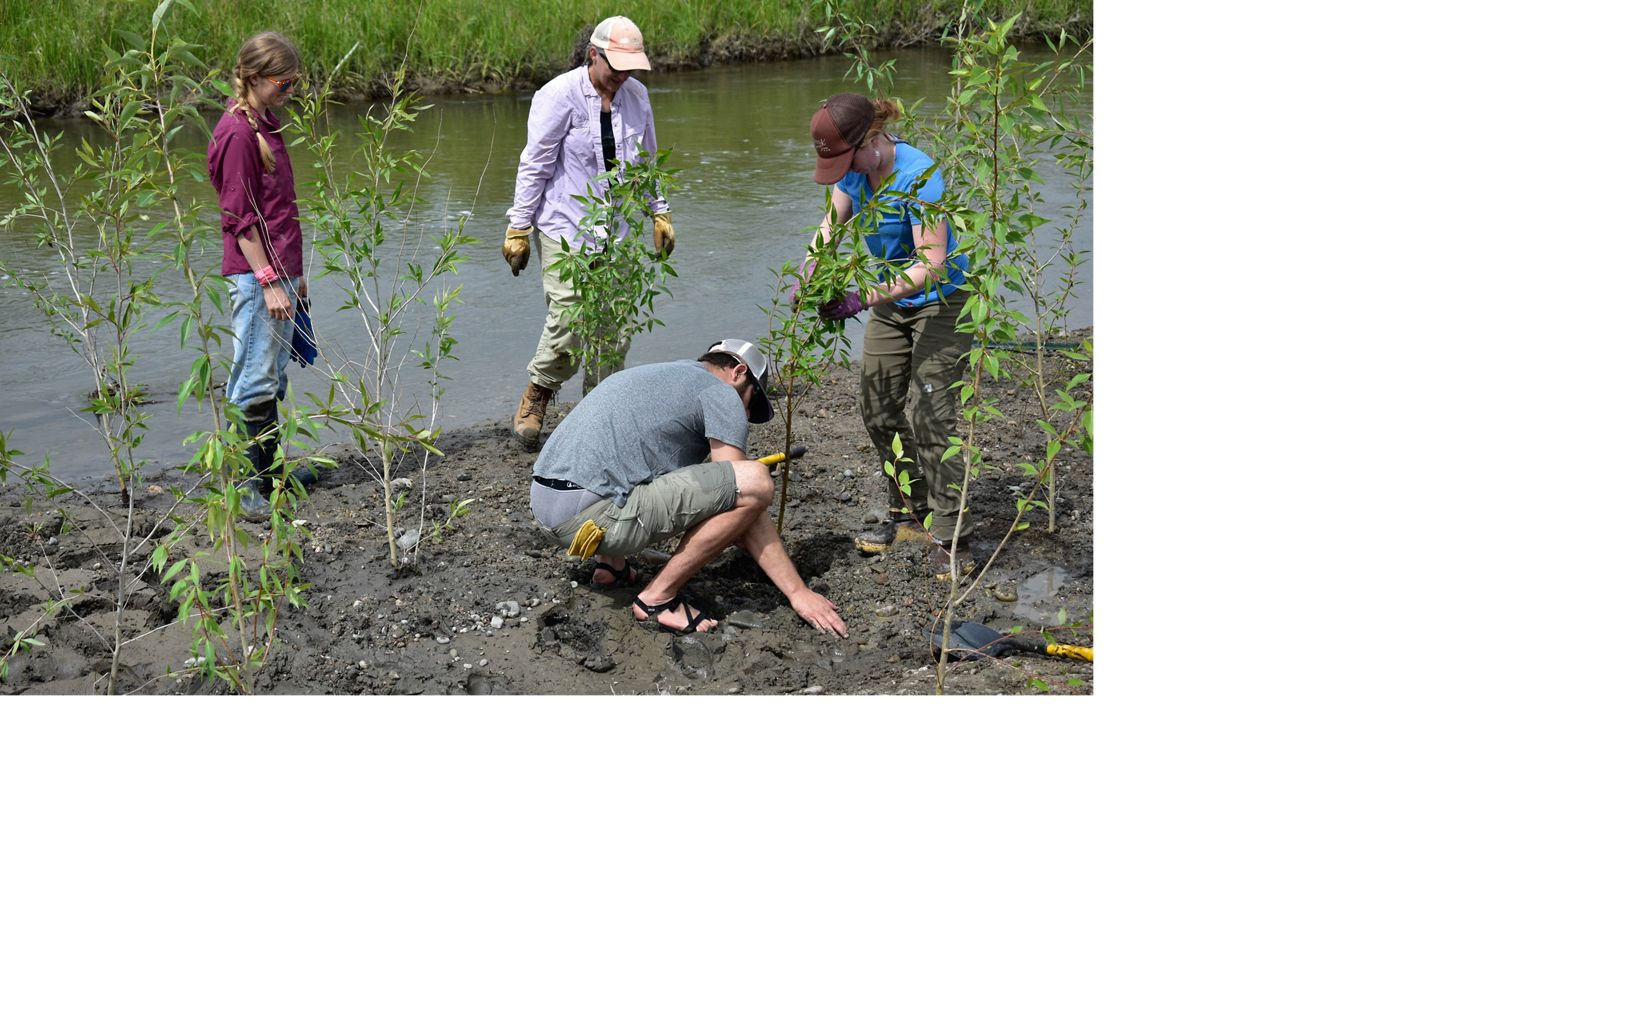 Planting willows on newly aligned Ruby River. A mix of hundreds of small trees and willow stakes are planted to stabilize banks and provide water-cooling shade.